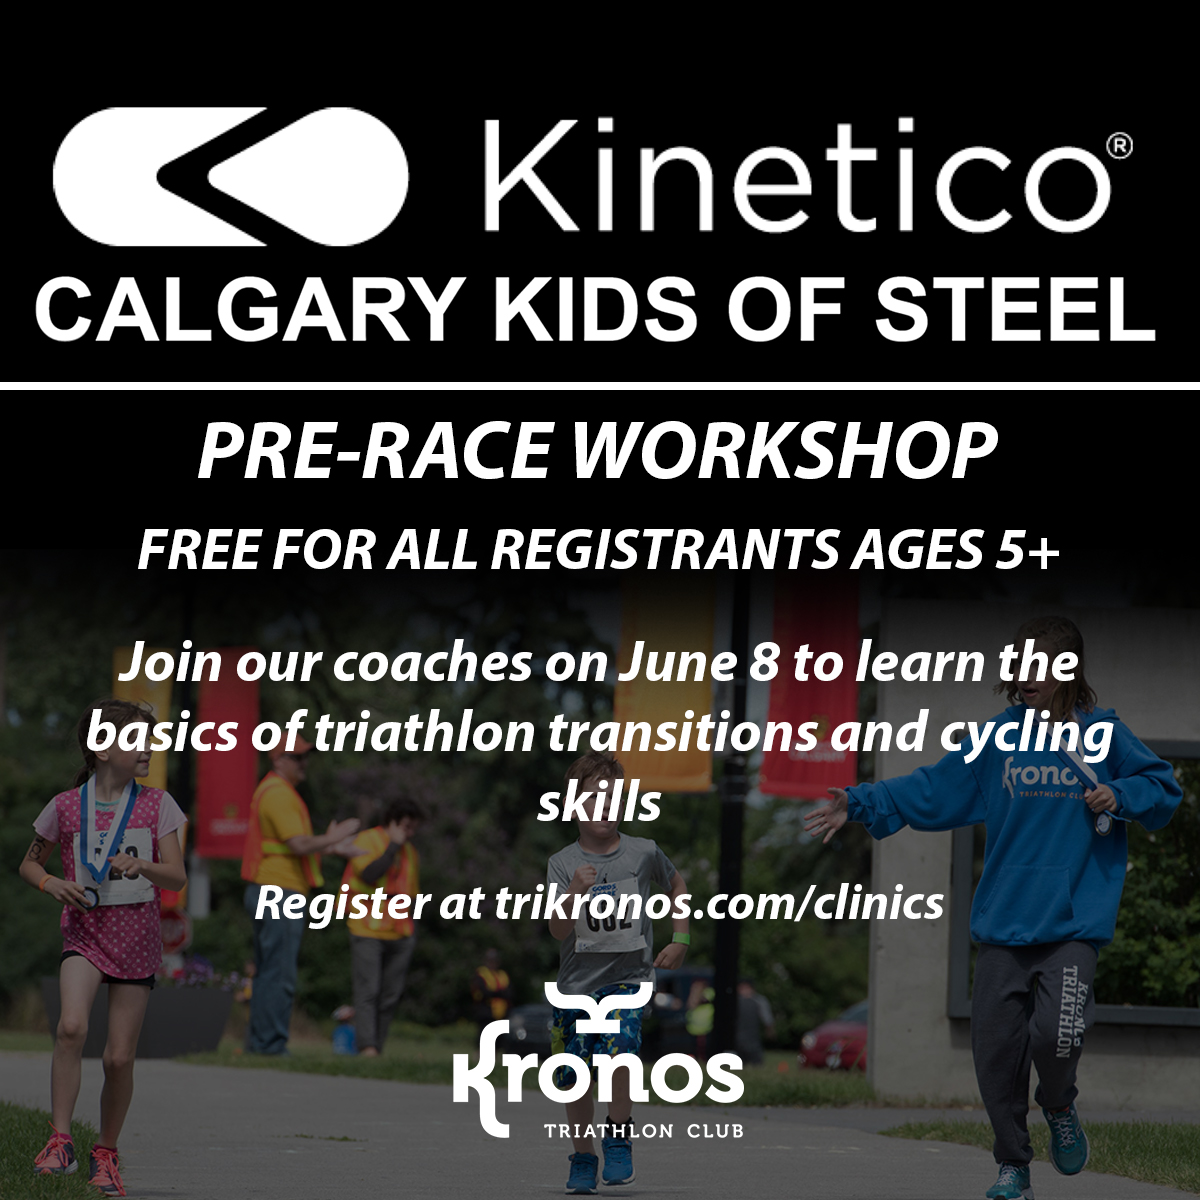 Open to all Kids of Steel registrants age 5+, not open to Kronos members (pre-race workshop will be provided during practice times).